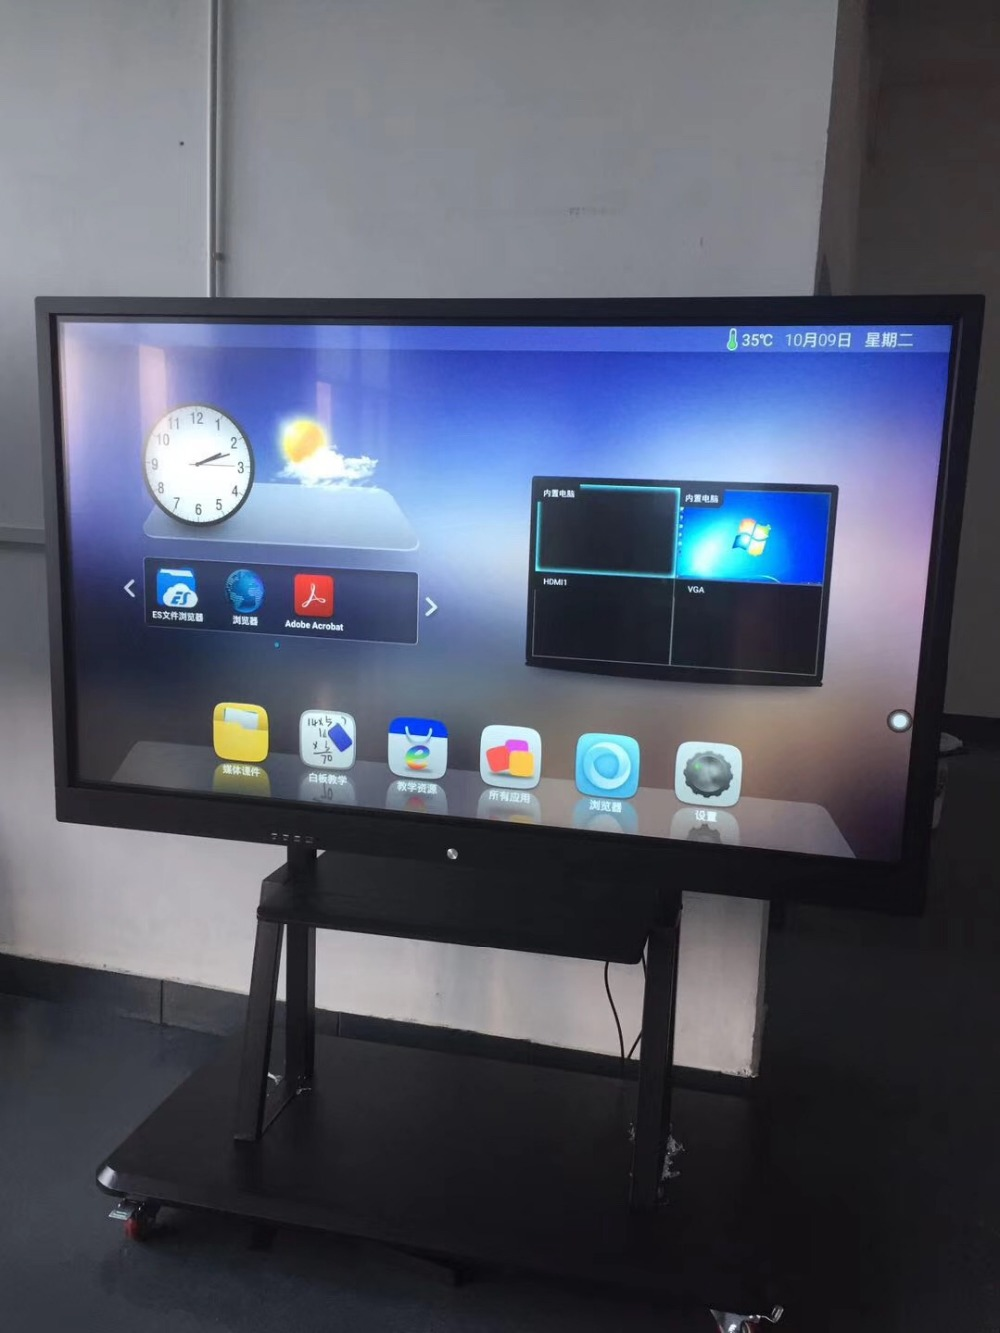 DIY 43 49 55 65 inch  LCD Social Media Display Kiosk /Digital Signage/ touch screen Display monitor with pc buit inDIY 43 49 55 65 inch  LCD Social Media Display Kiosk /Digital Signage/ touch screen Display monitor with pc buit in